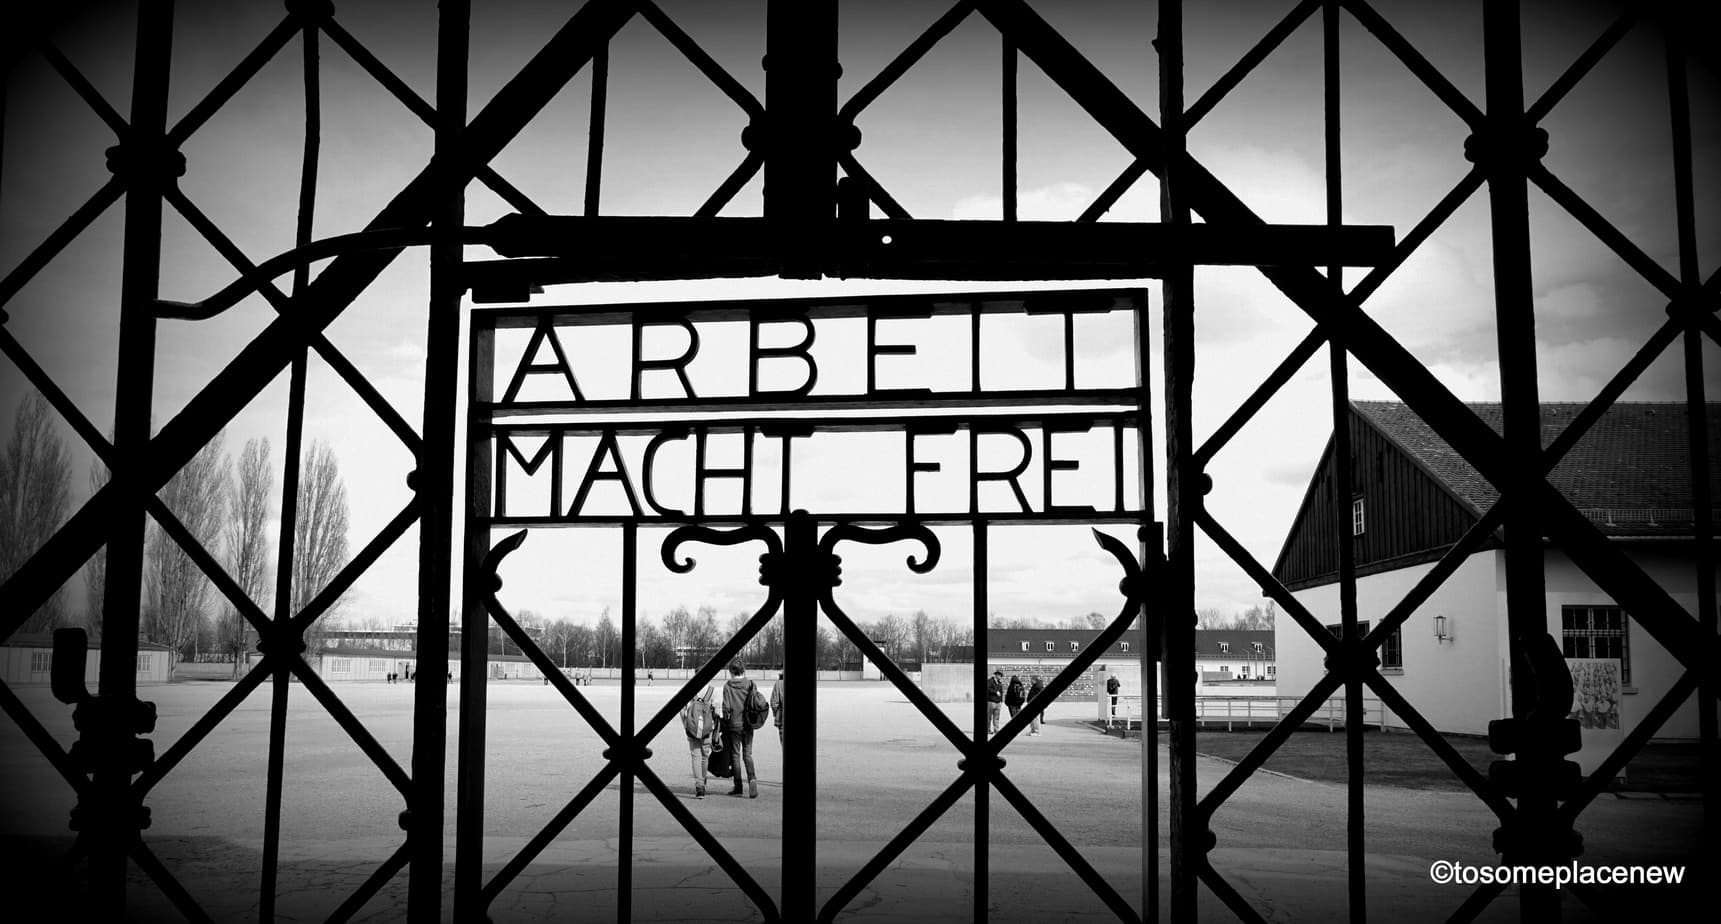 Visit to Dachau (Concentration Camp) Memorial Site Munich